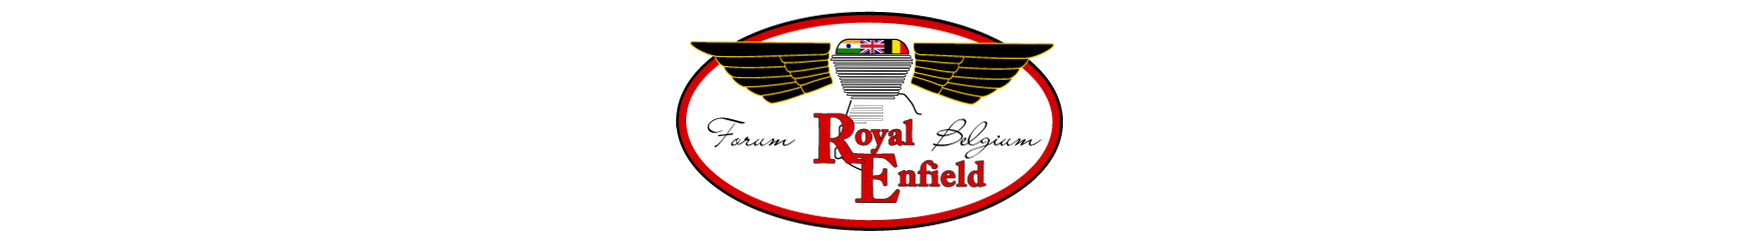 Royal Enfield Forum - Belgisch Forum